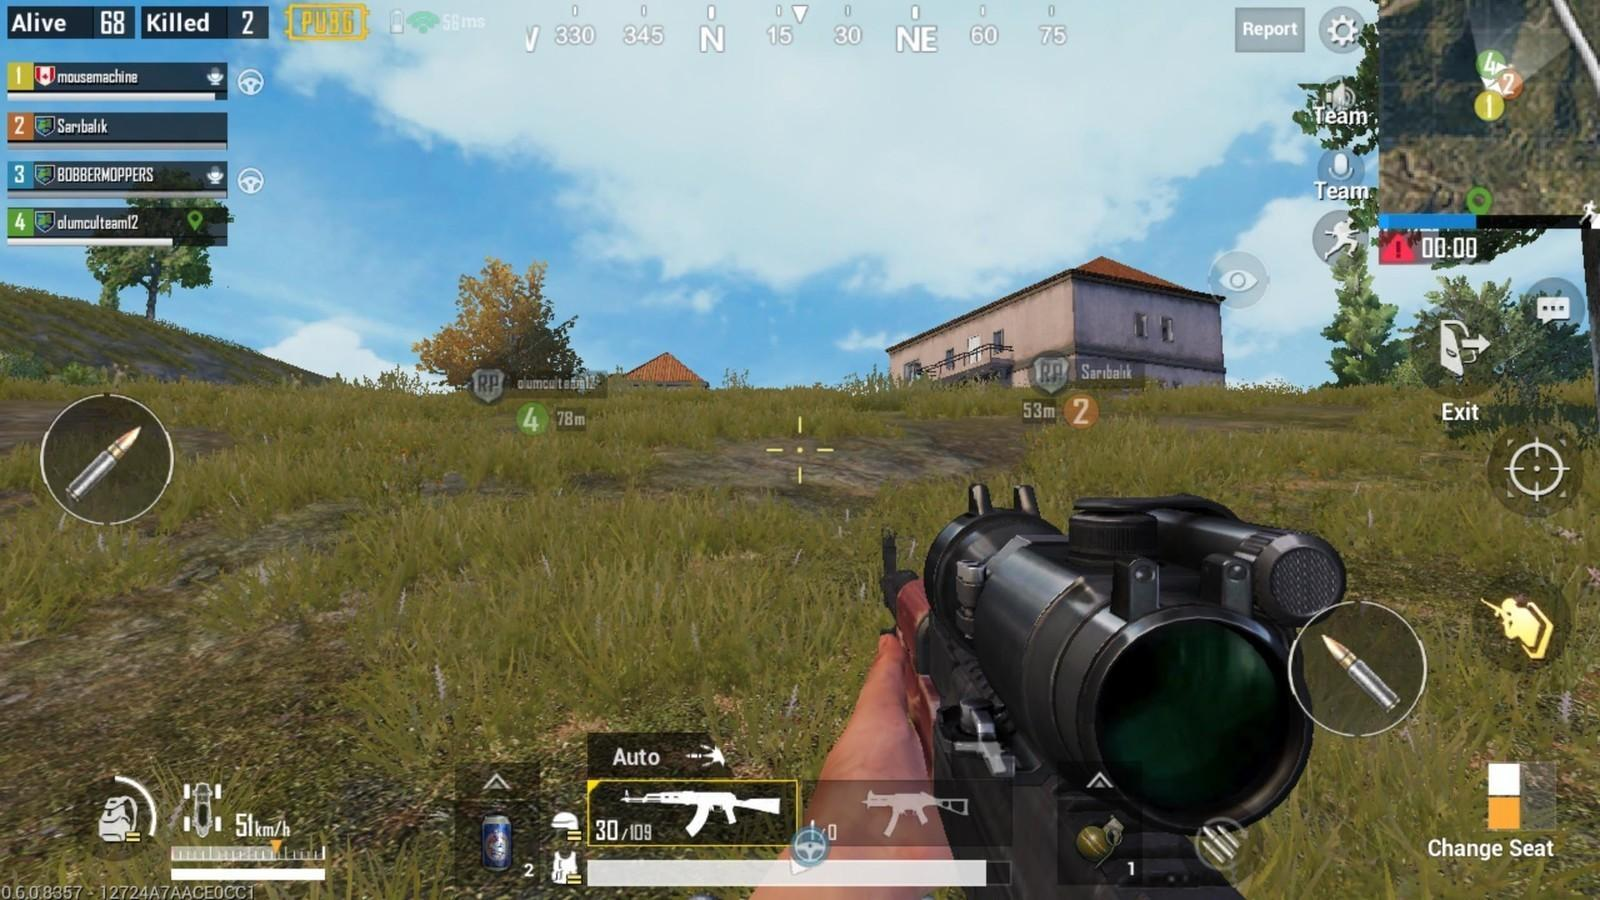 Pubg Wallpaper 4k Hd Background For Android Apk Download